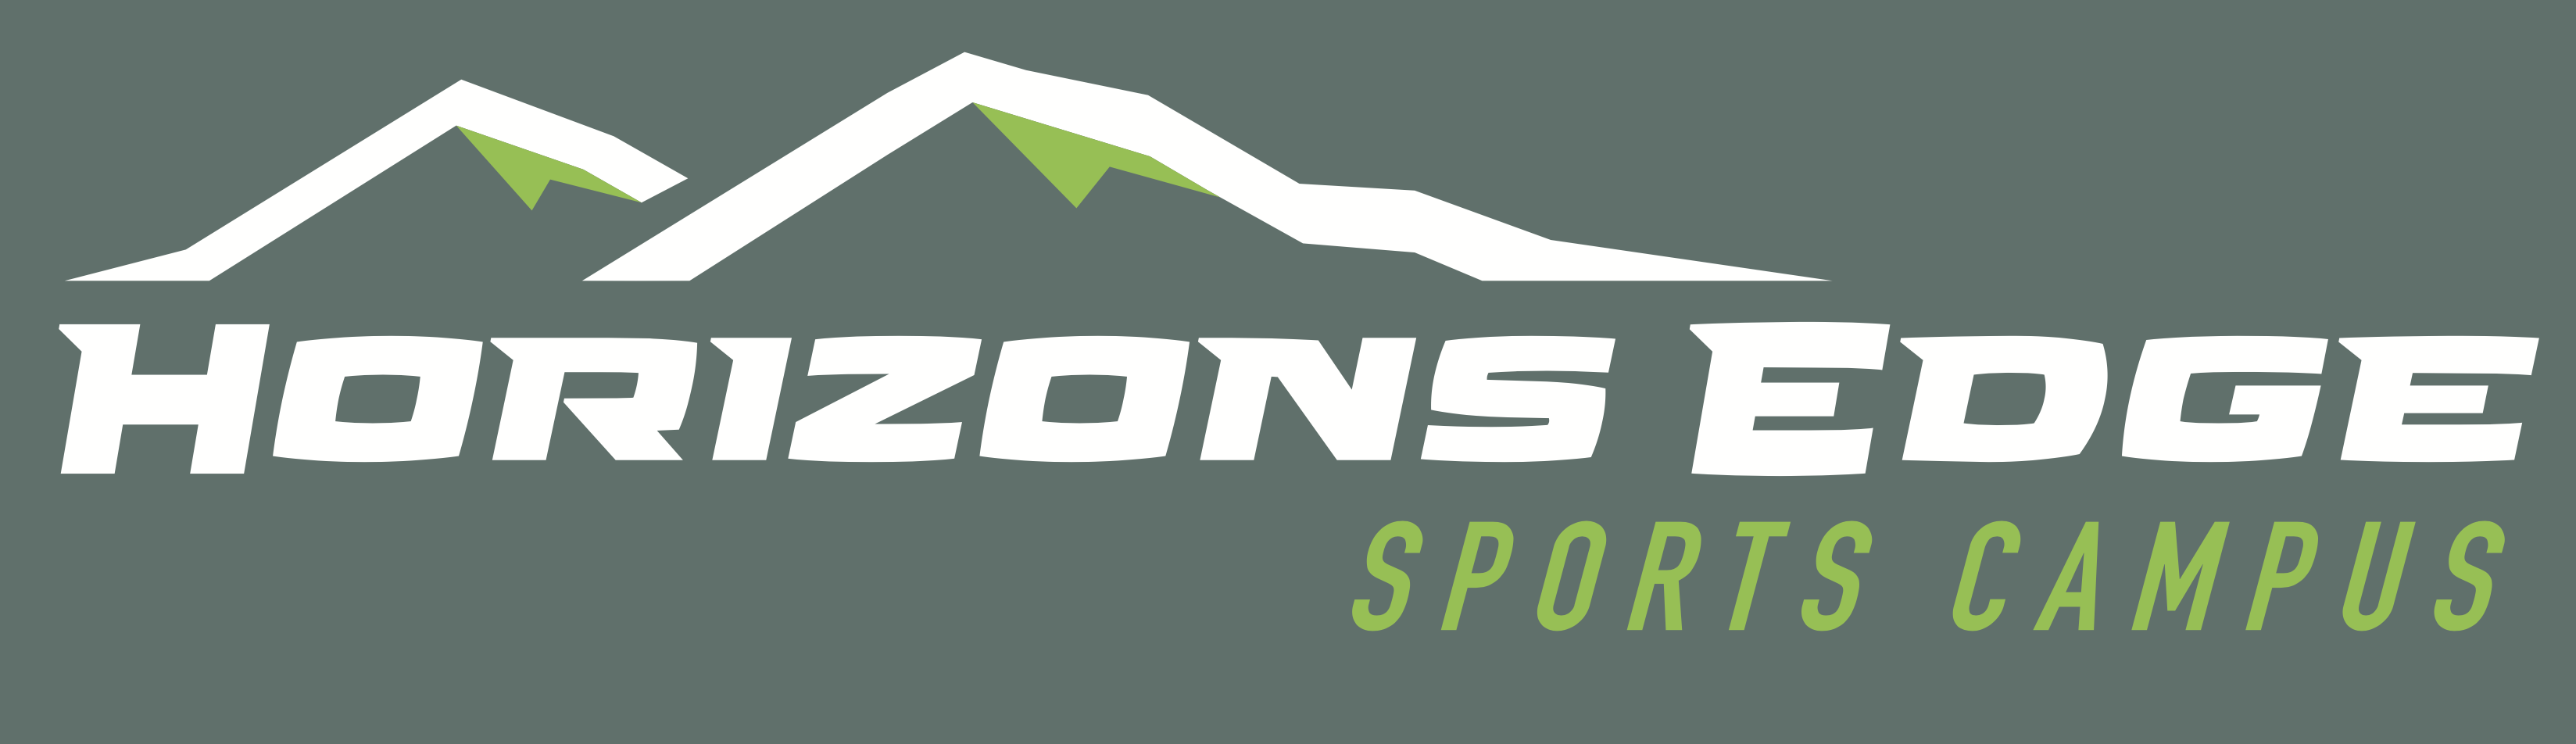 Horizons Edge Sports Campus Logo